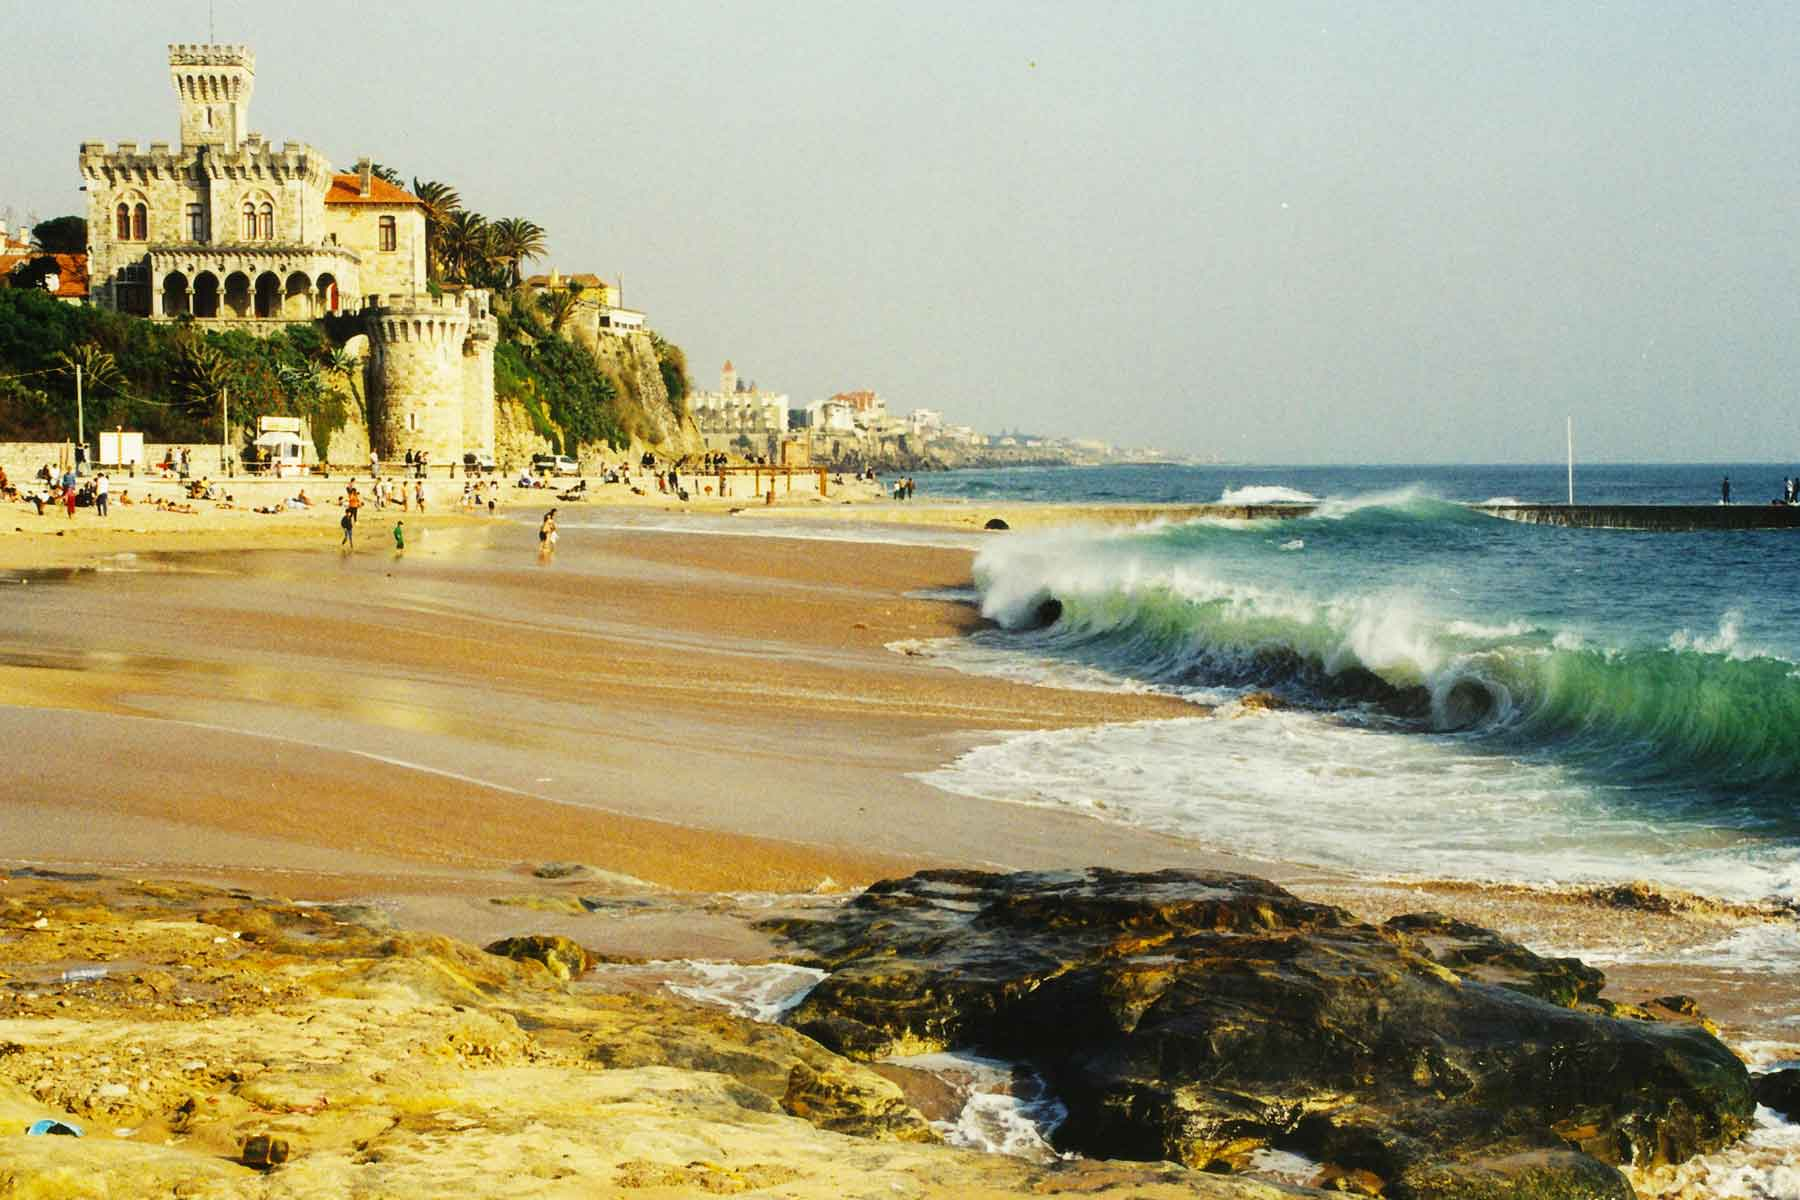 Lisbon Portugal - Surf Beach - Steven Andrew Martin - Photo Journal - Study Abroad 1998